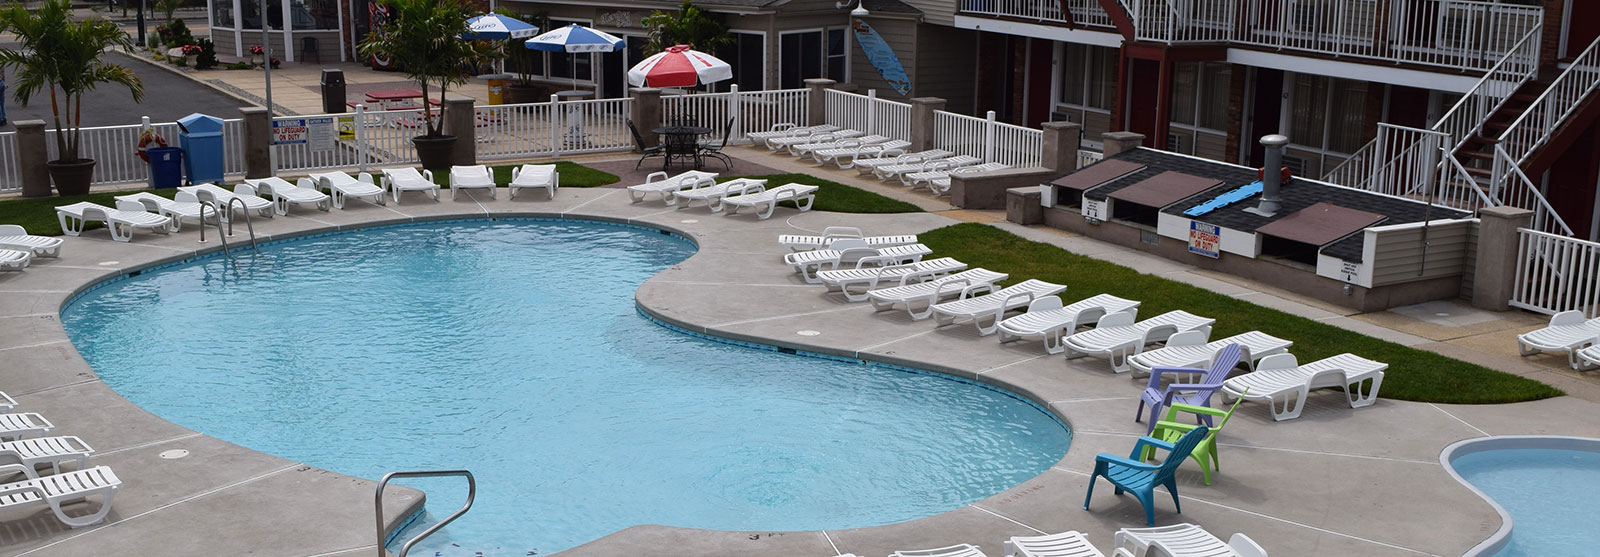 Boasting the largest pool in Seaside Heights!